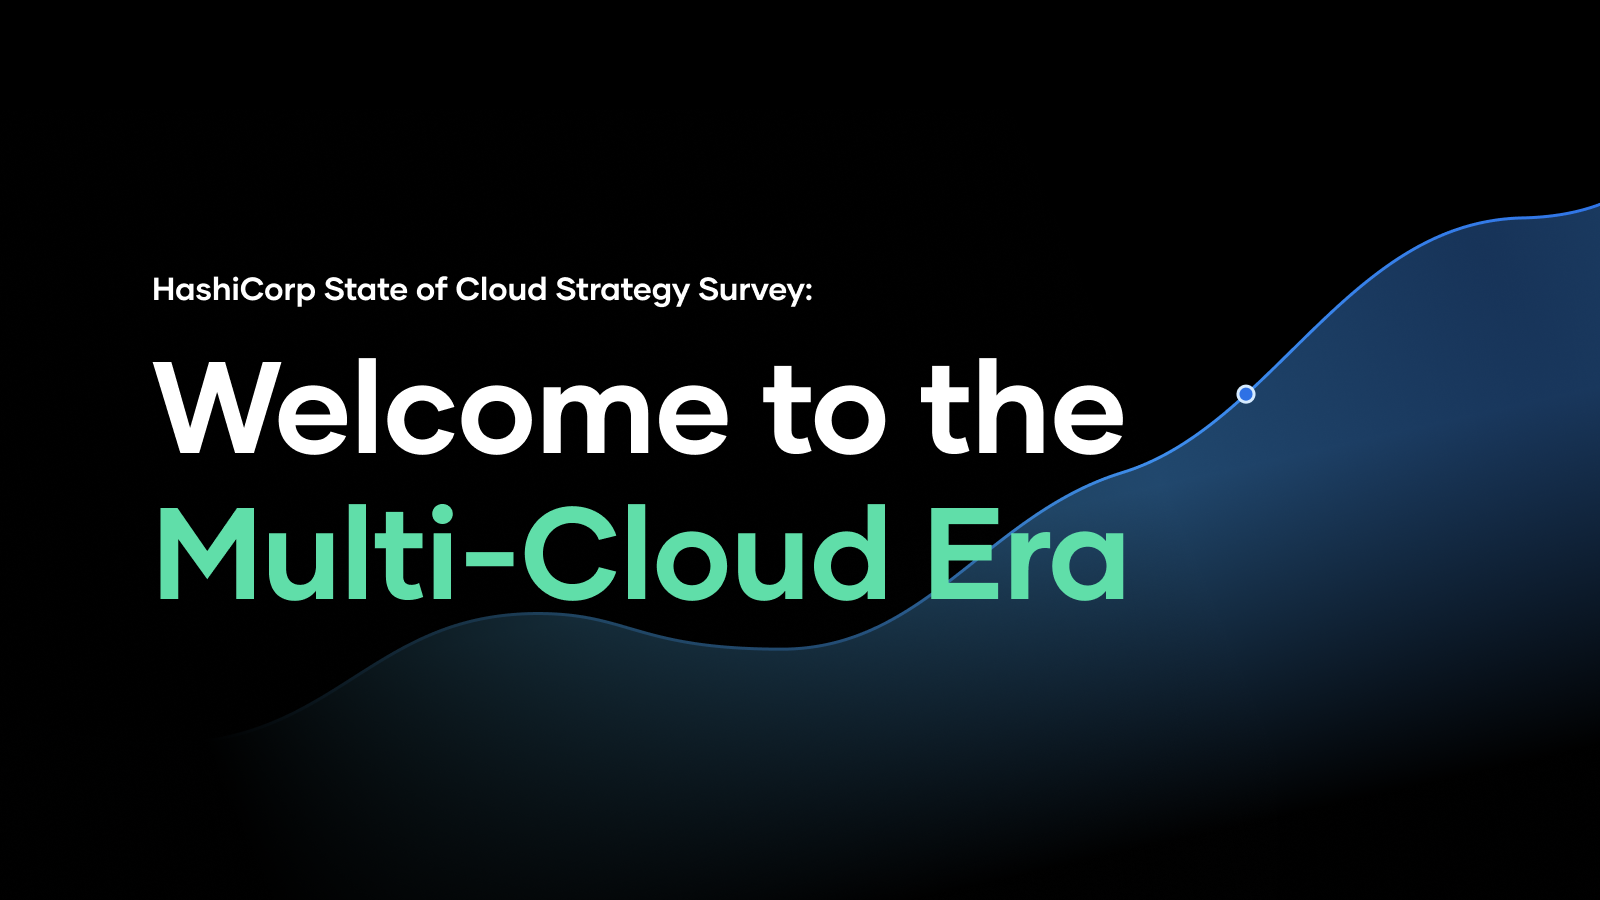 HashiCorp State of Cloud Strategy Survey: Welcome to the Multi-Cloud Era